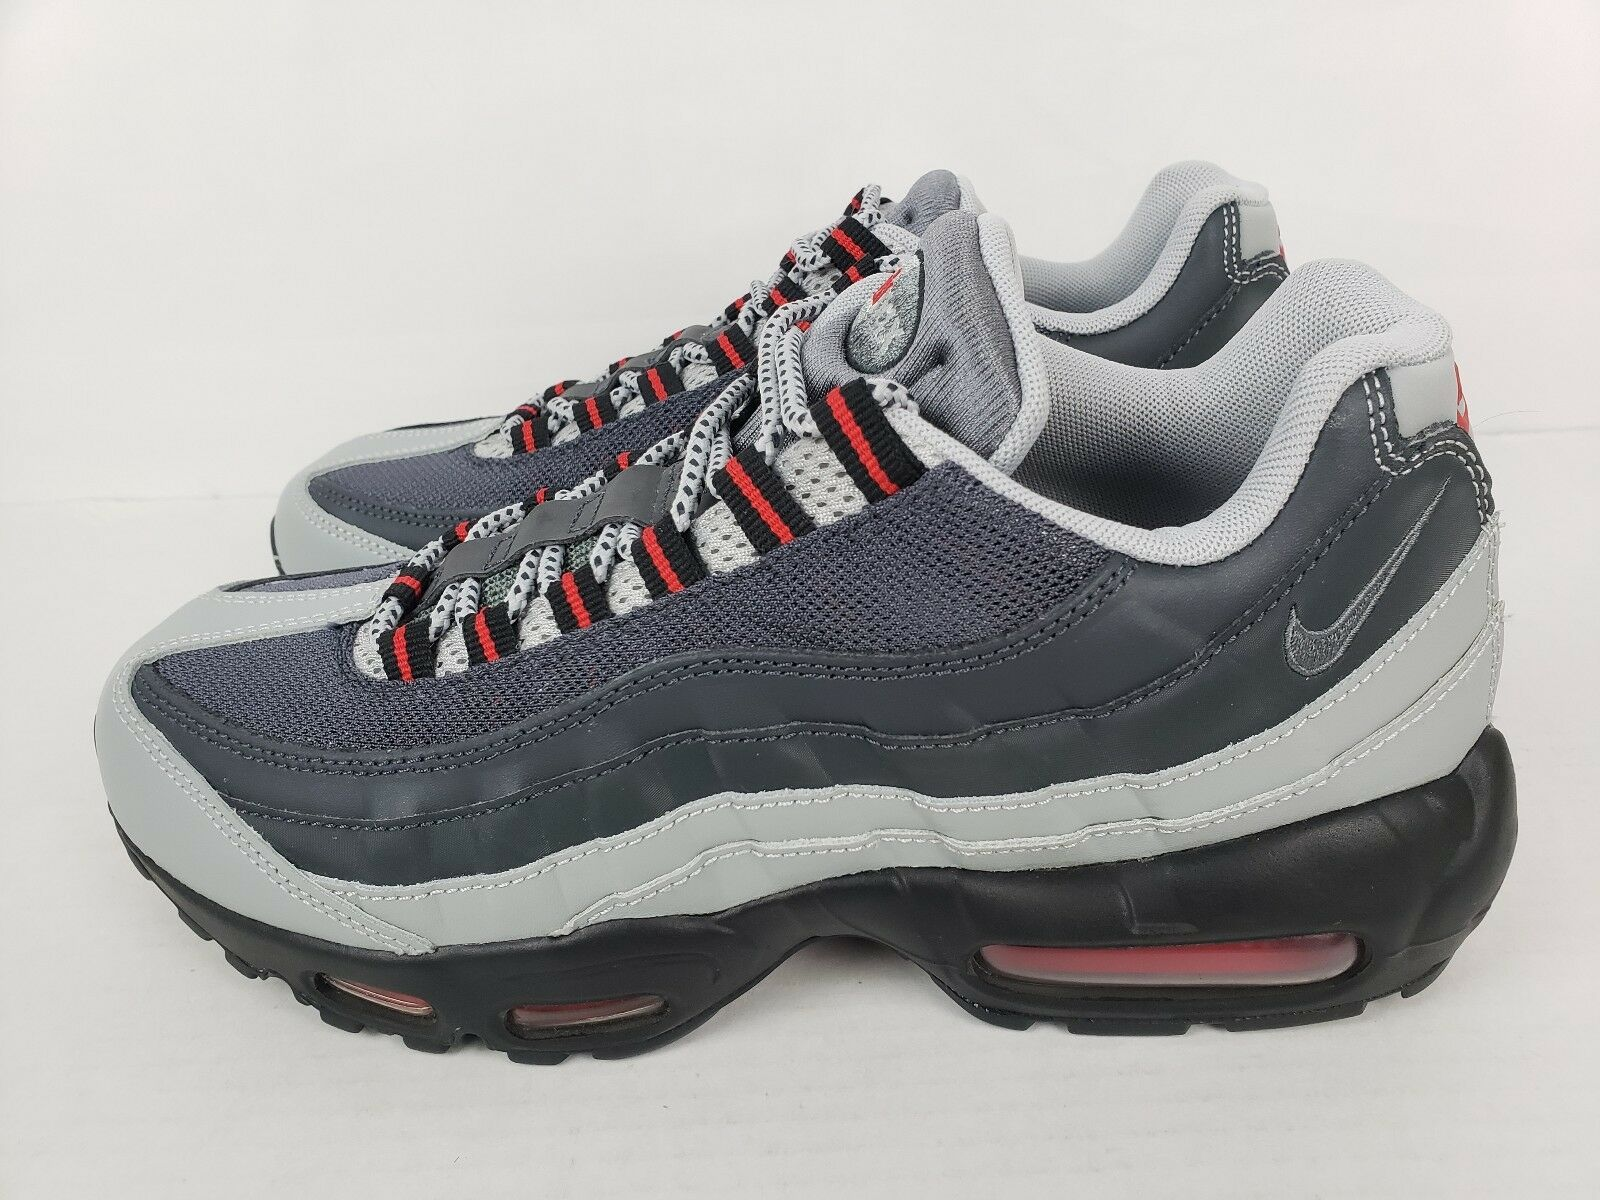 Nike Air Max 95 Essential Silver Grey Anthracite Red 749766-006 Size 8.5